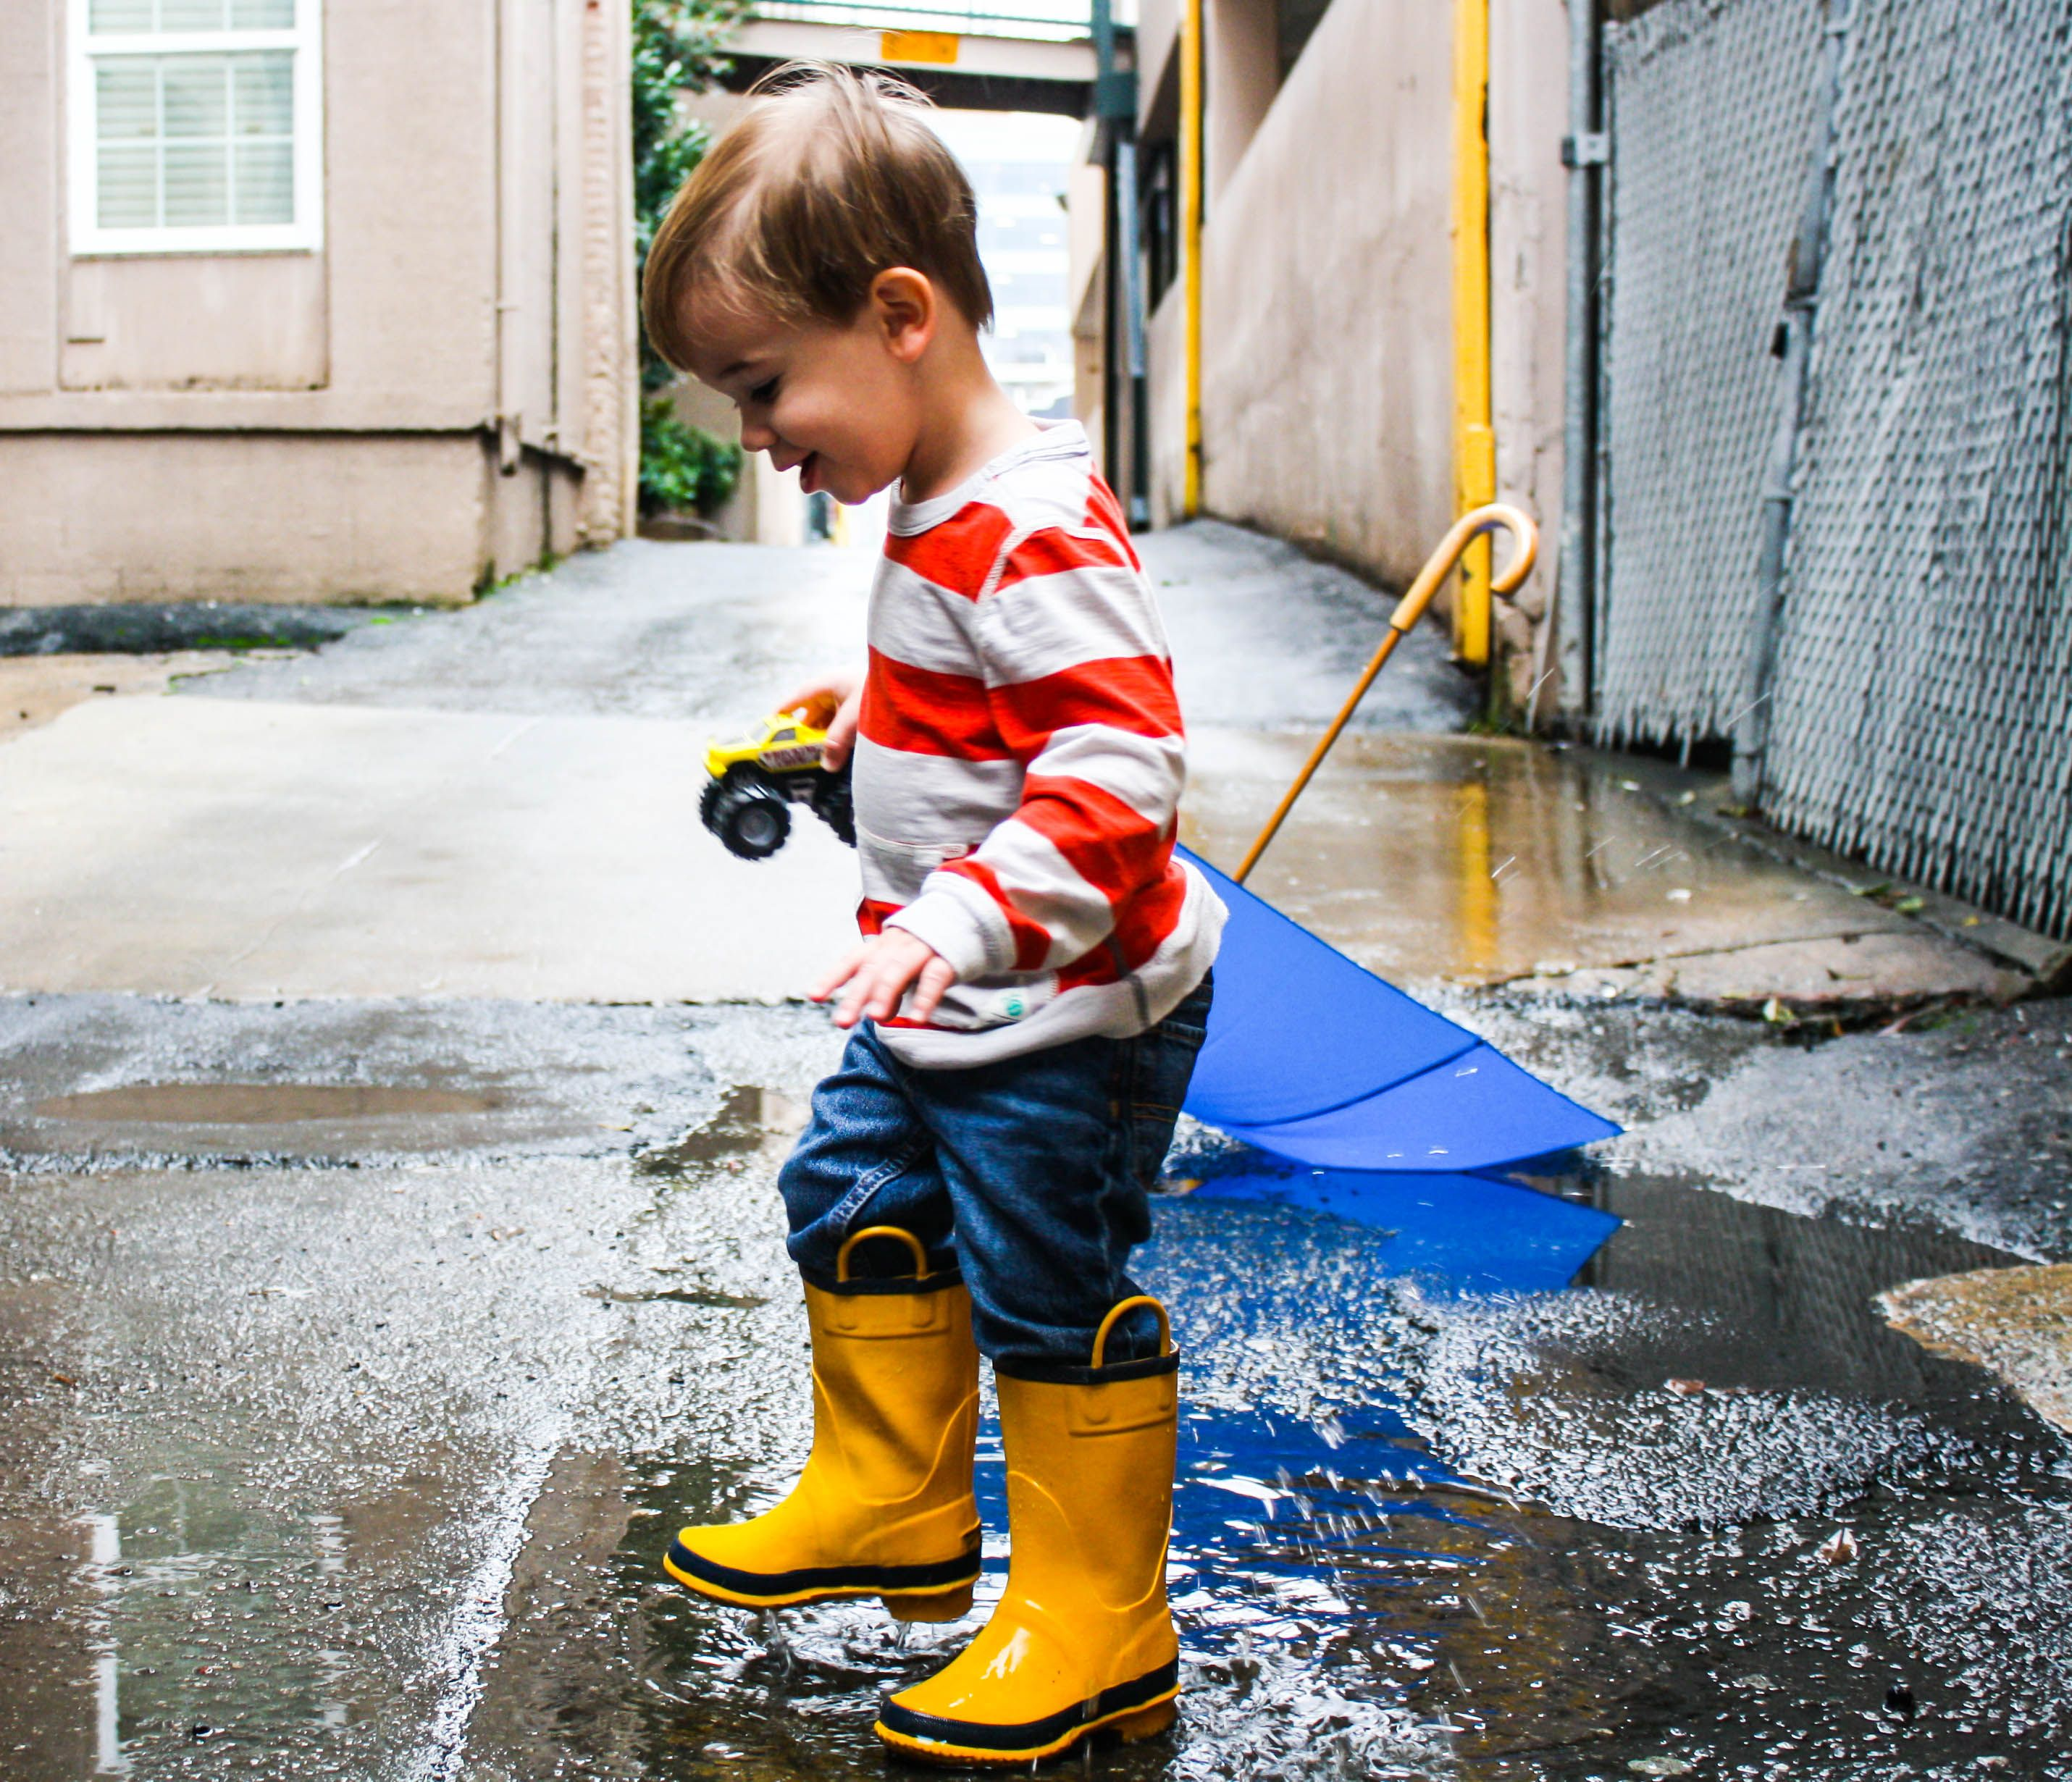 18 Months & Little Yellow Rain Boots | Kid, Yellow and Rain boots